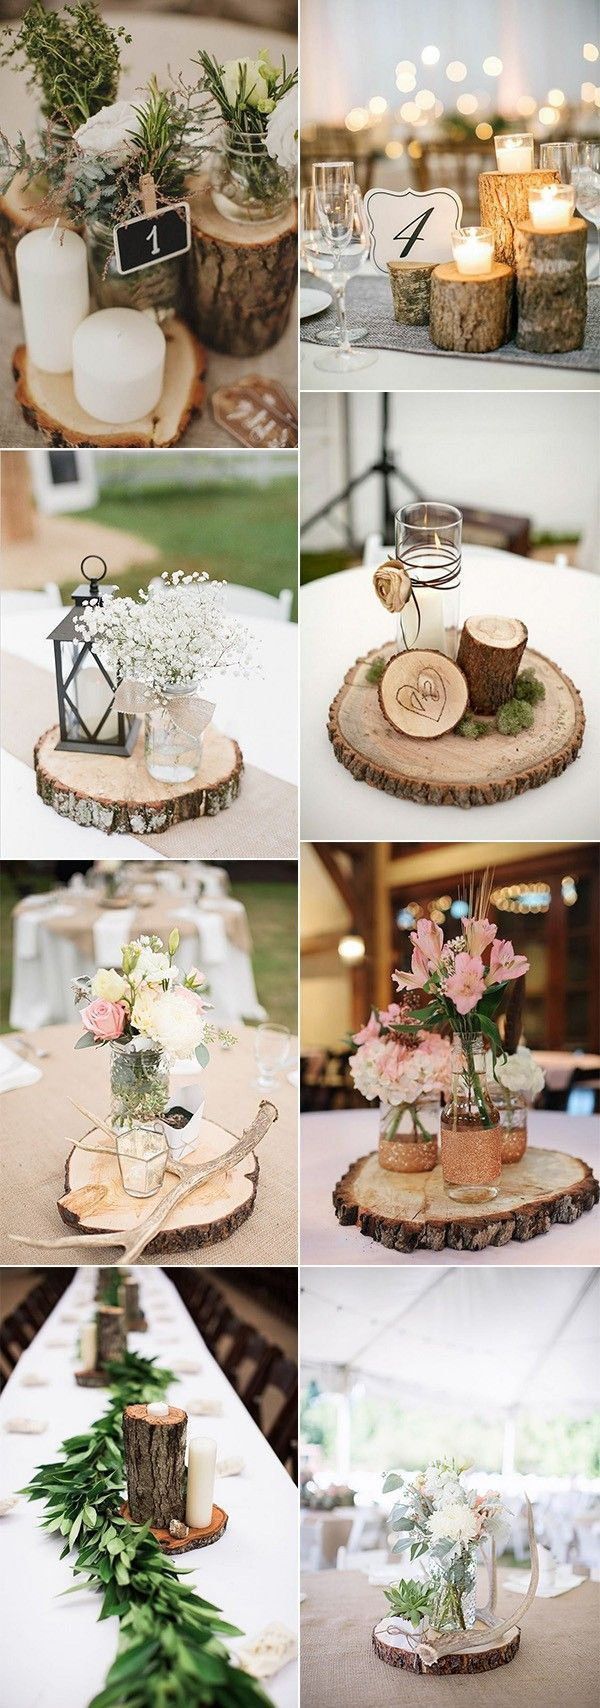 28 Country Rustic Wedding Decoration Ideas with Tr…